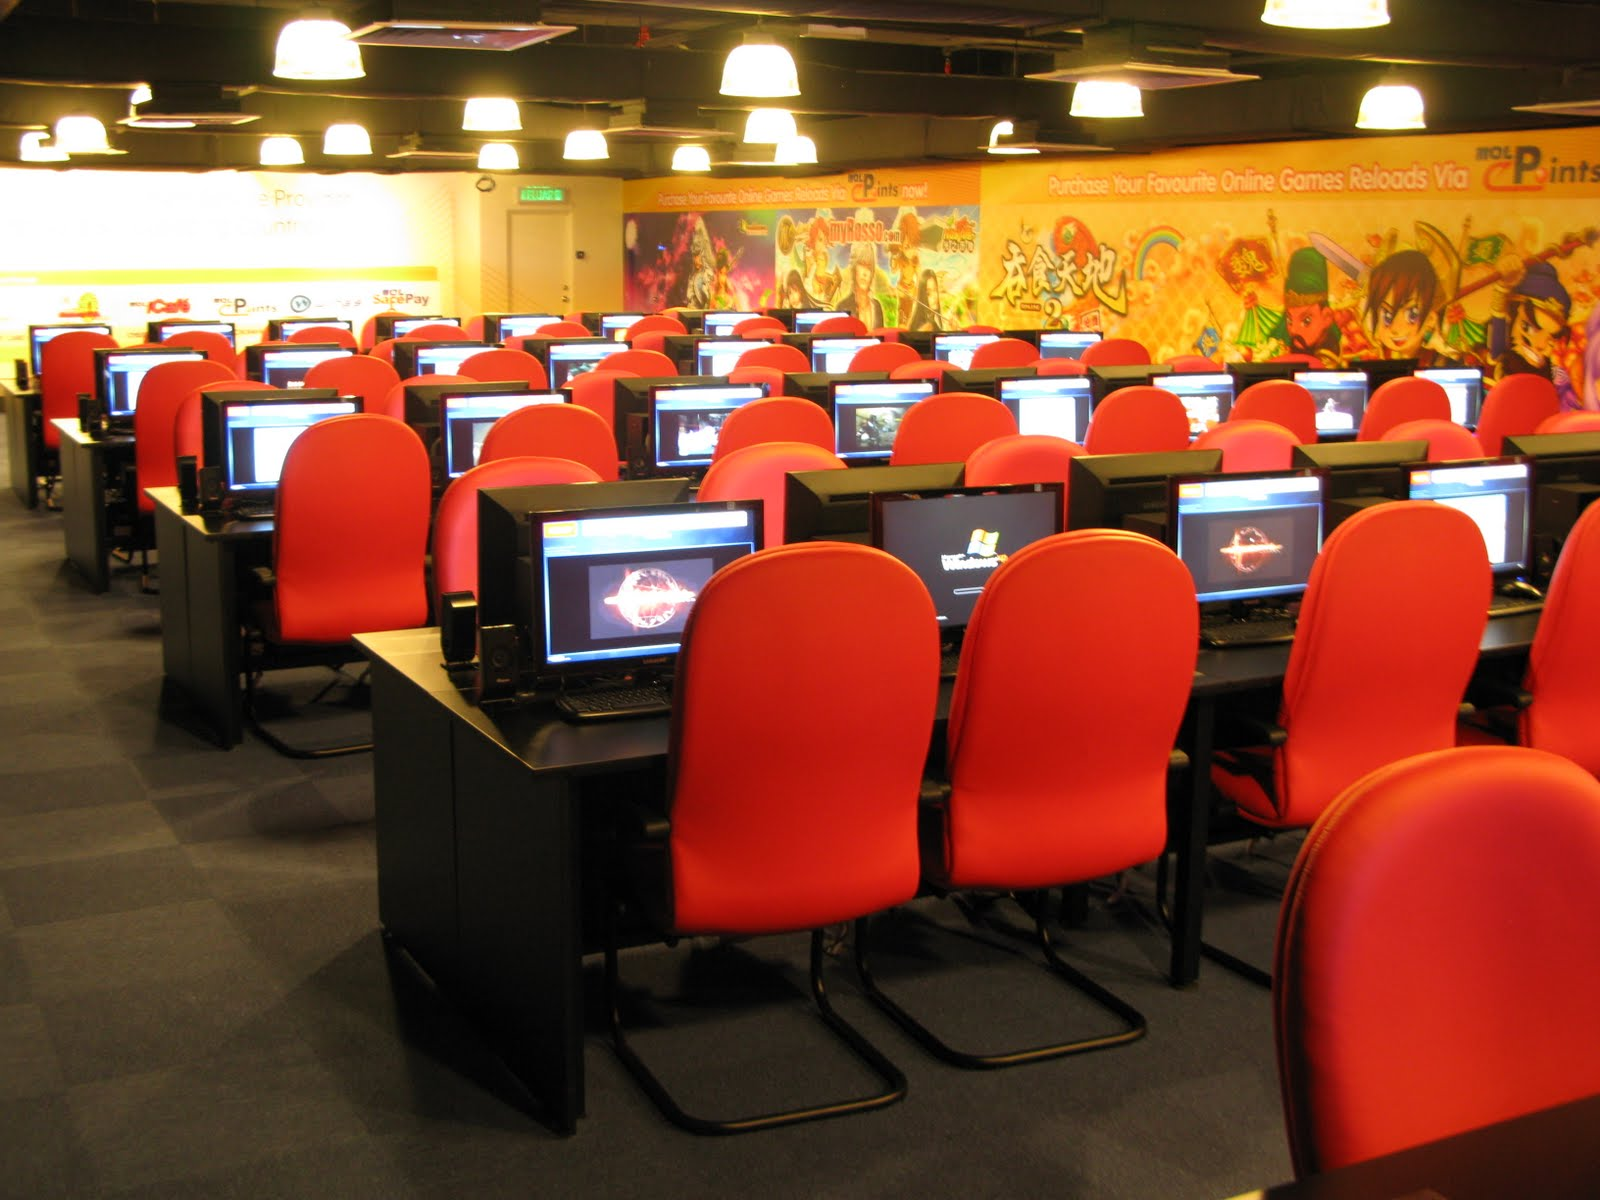 Image from World Cyber Cafe